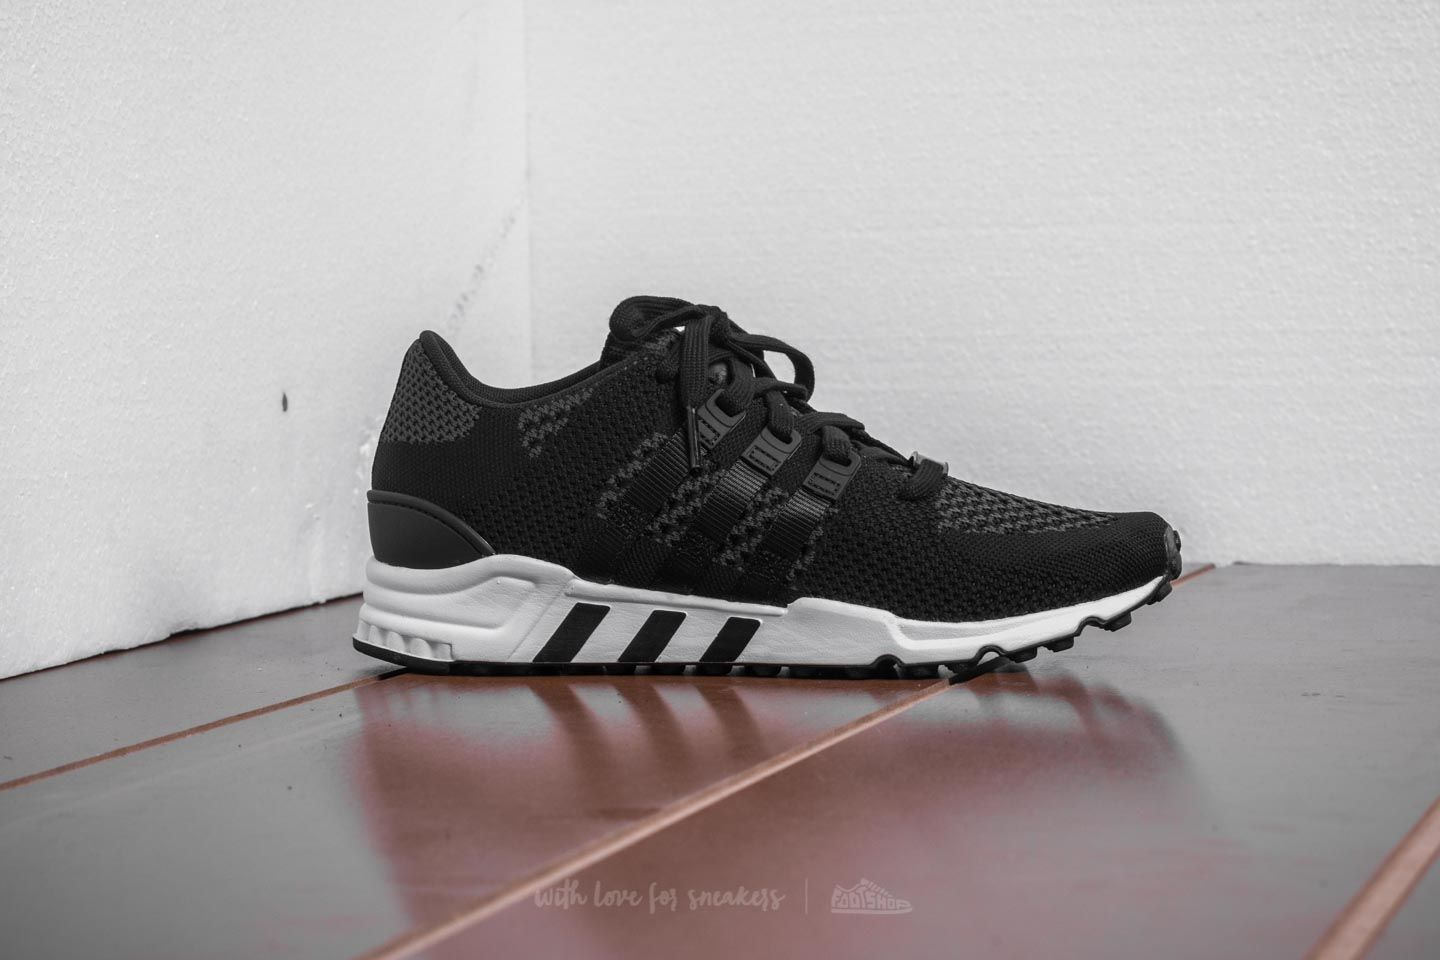 big sale 1b5f9 ebbee adidas EQT Support RF Primeknit Core Black Core Black Ftw White at a great